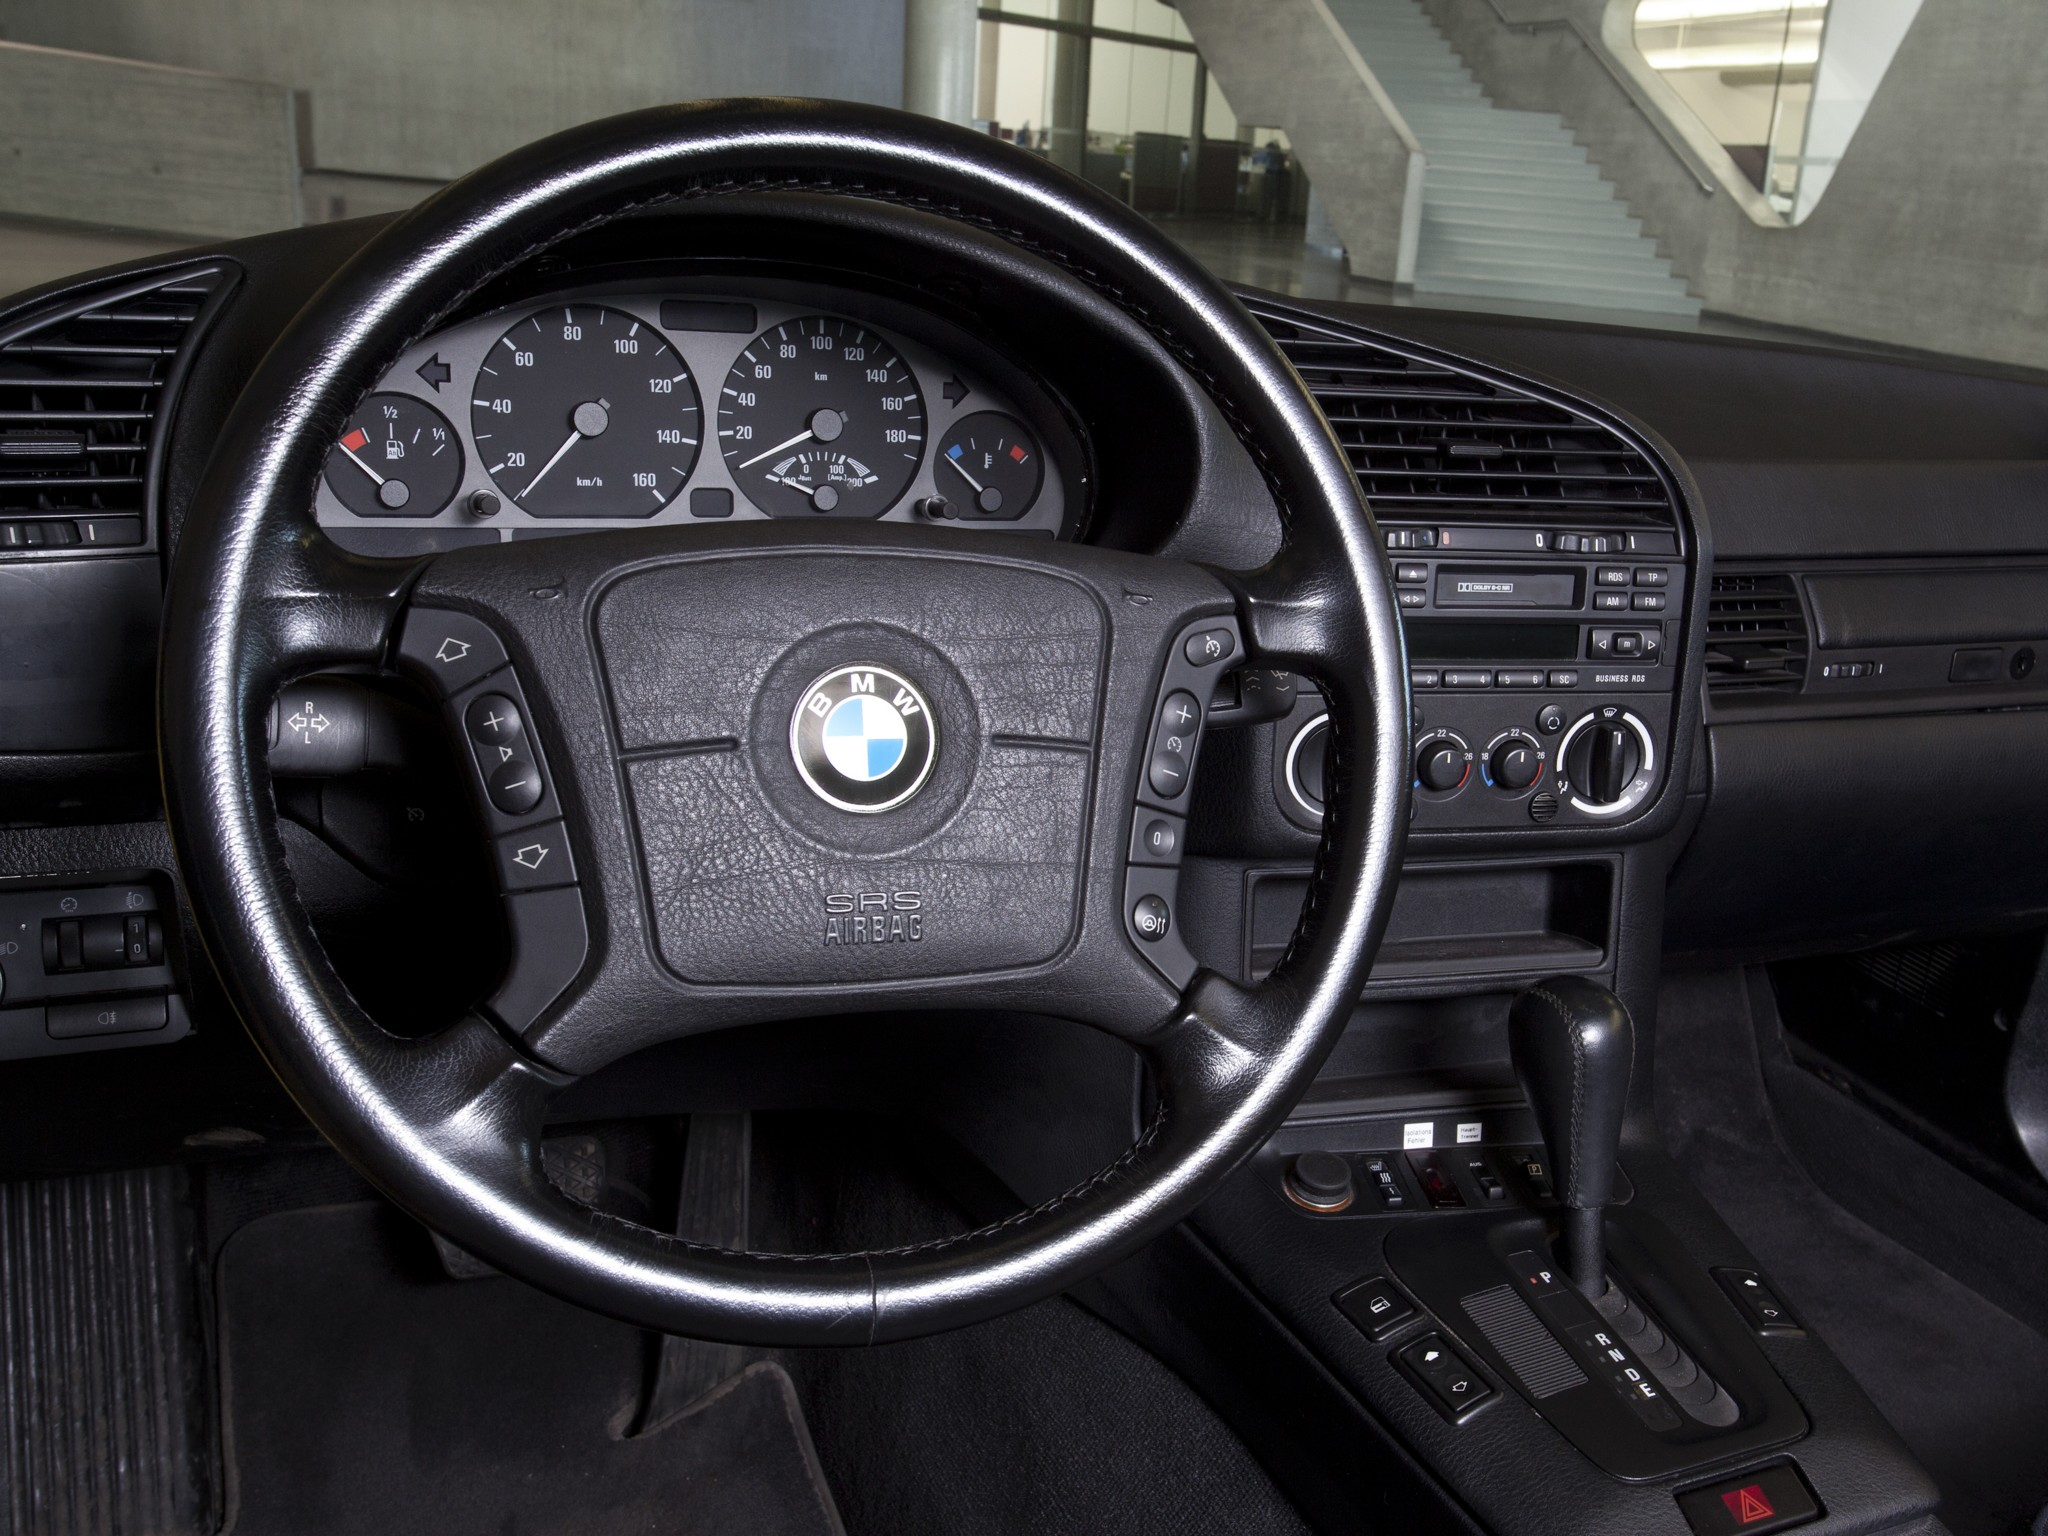 1995 Bmw 3 series (e36) - pictures, information and specs ...